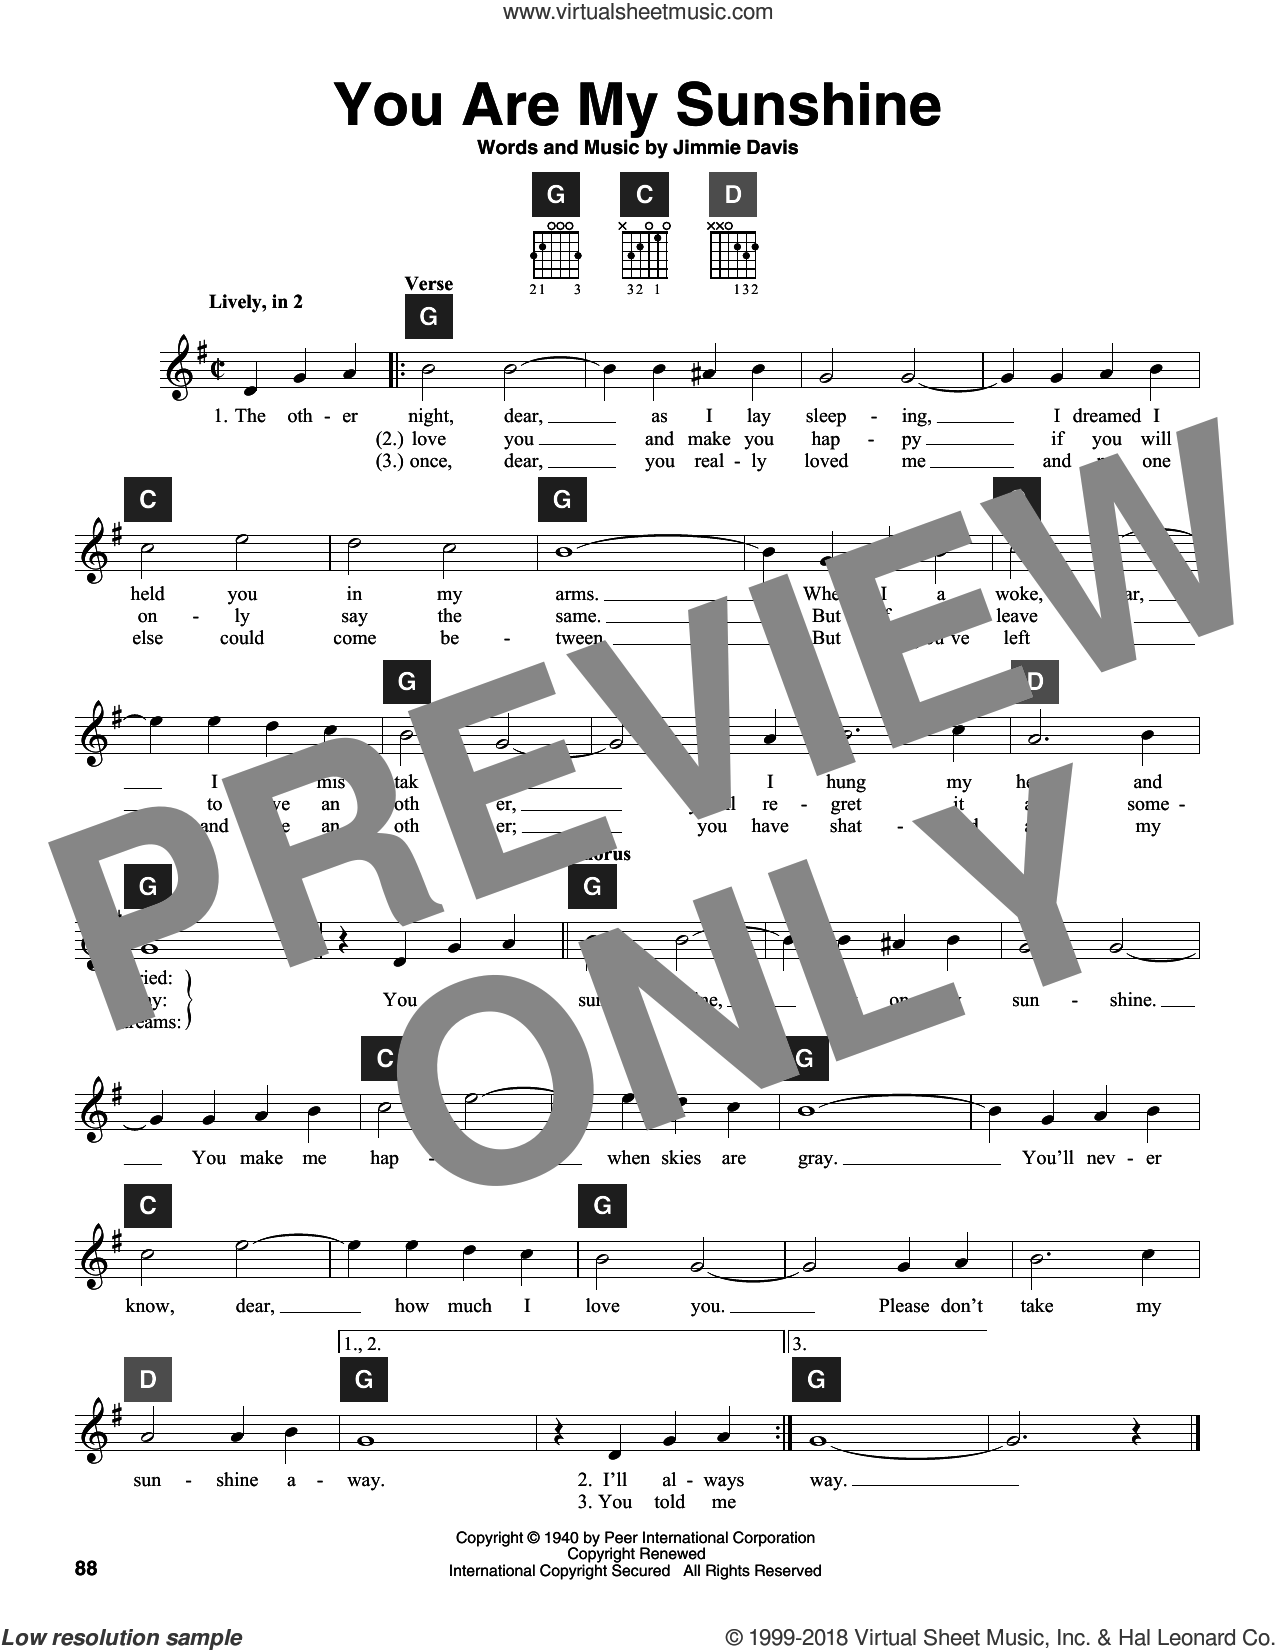 You Are My Sunshine sheet music for guitar solo (ChordBuddy system) by Jimmie Davis, Duane Eddy and Ray Charles. Score Image Preview.